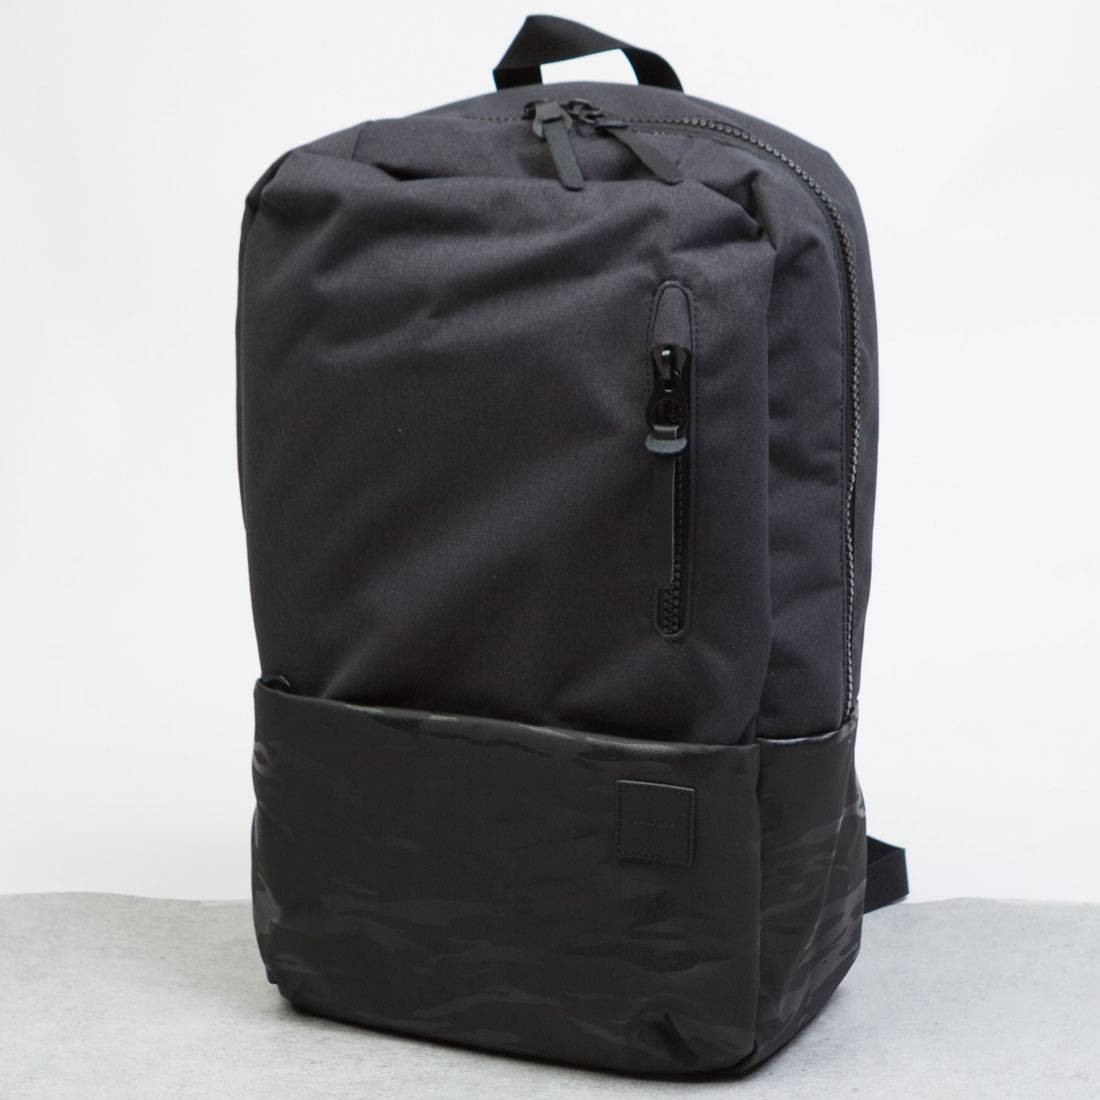 Incase Compass Backpack (black / camo)